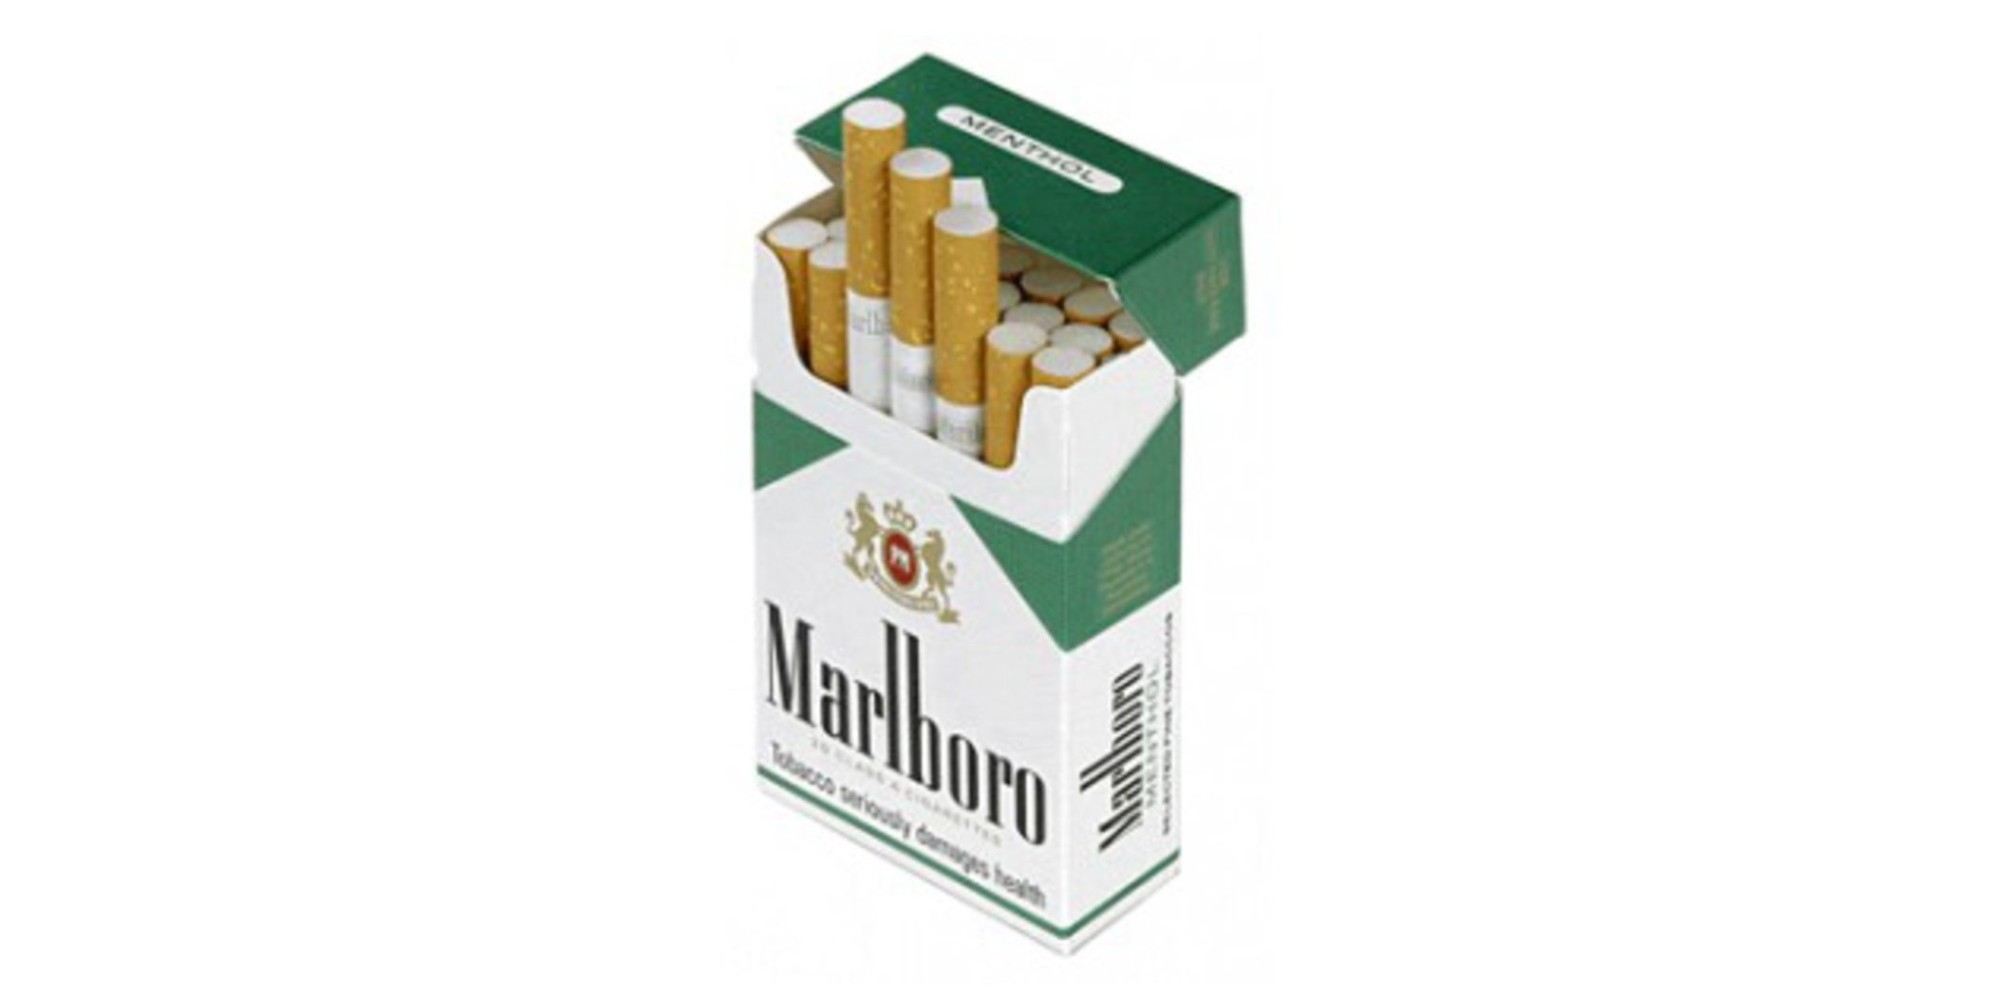 Cost of a carton of cigarettes Karelia in UK